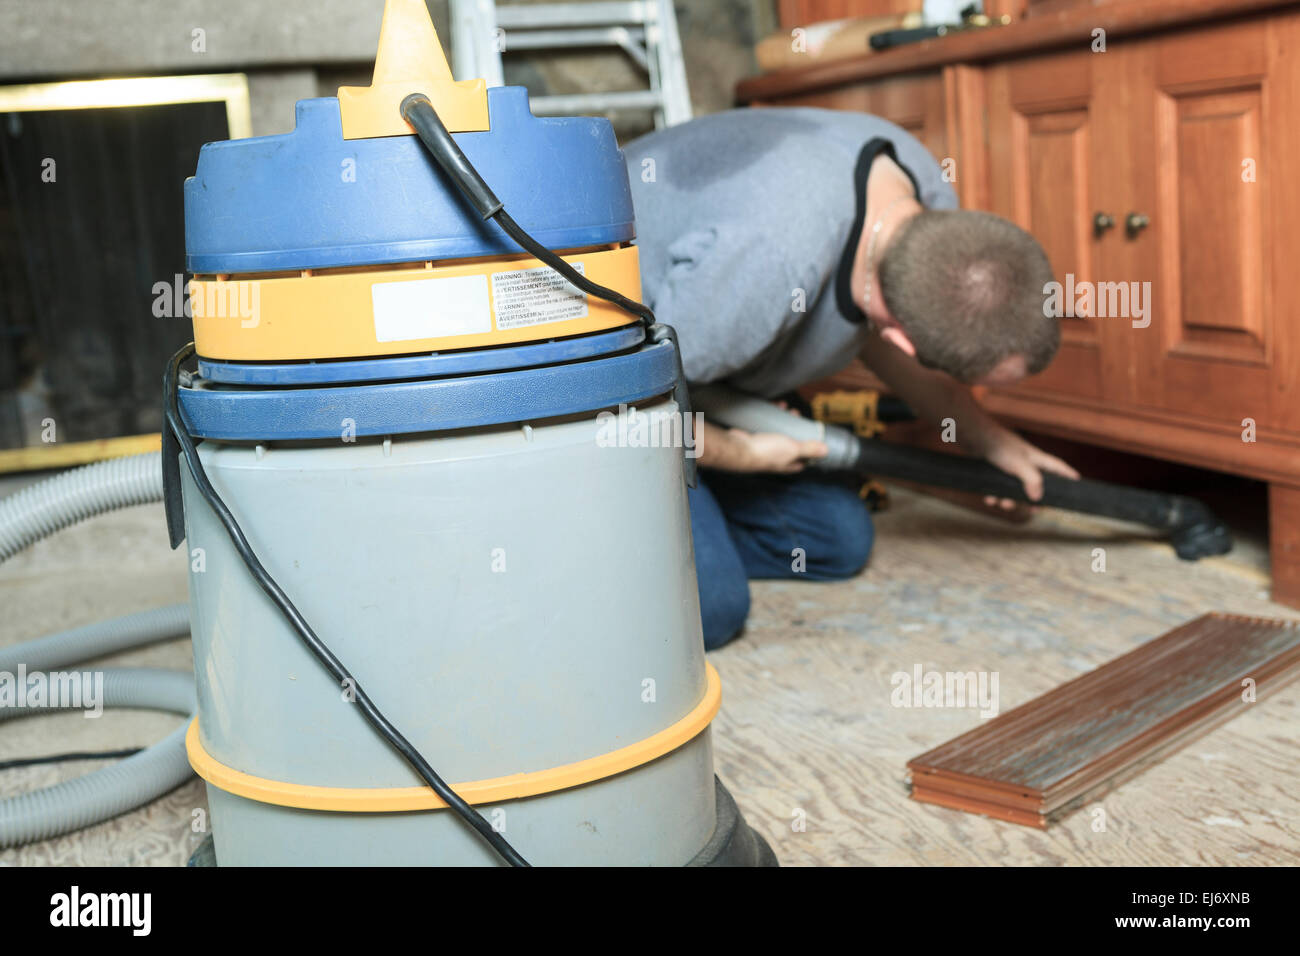 worker vacuum system trying to clean something. - Stock Image